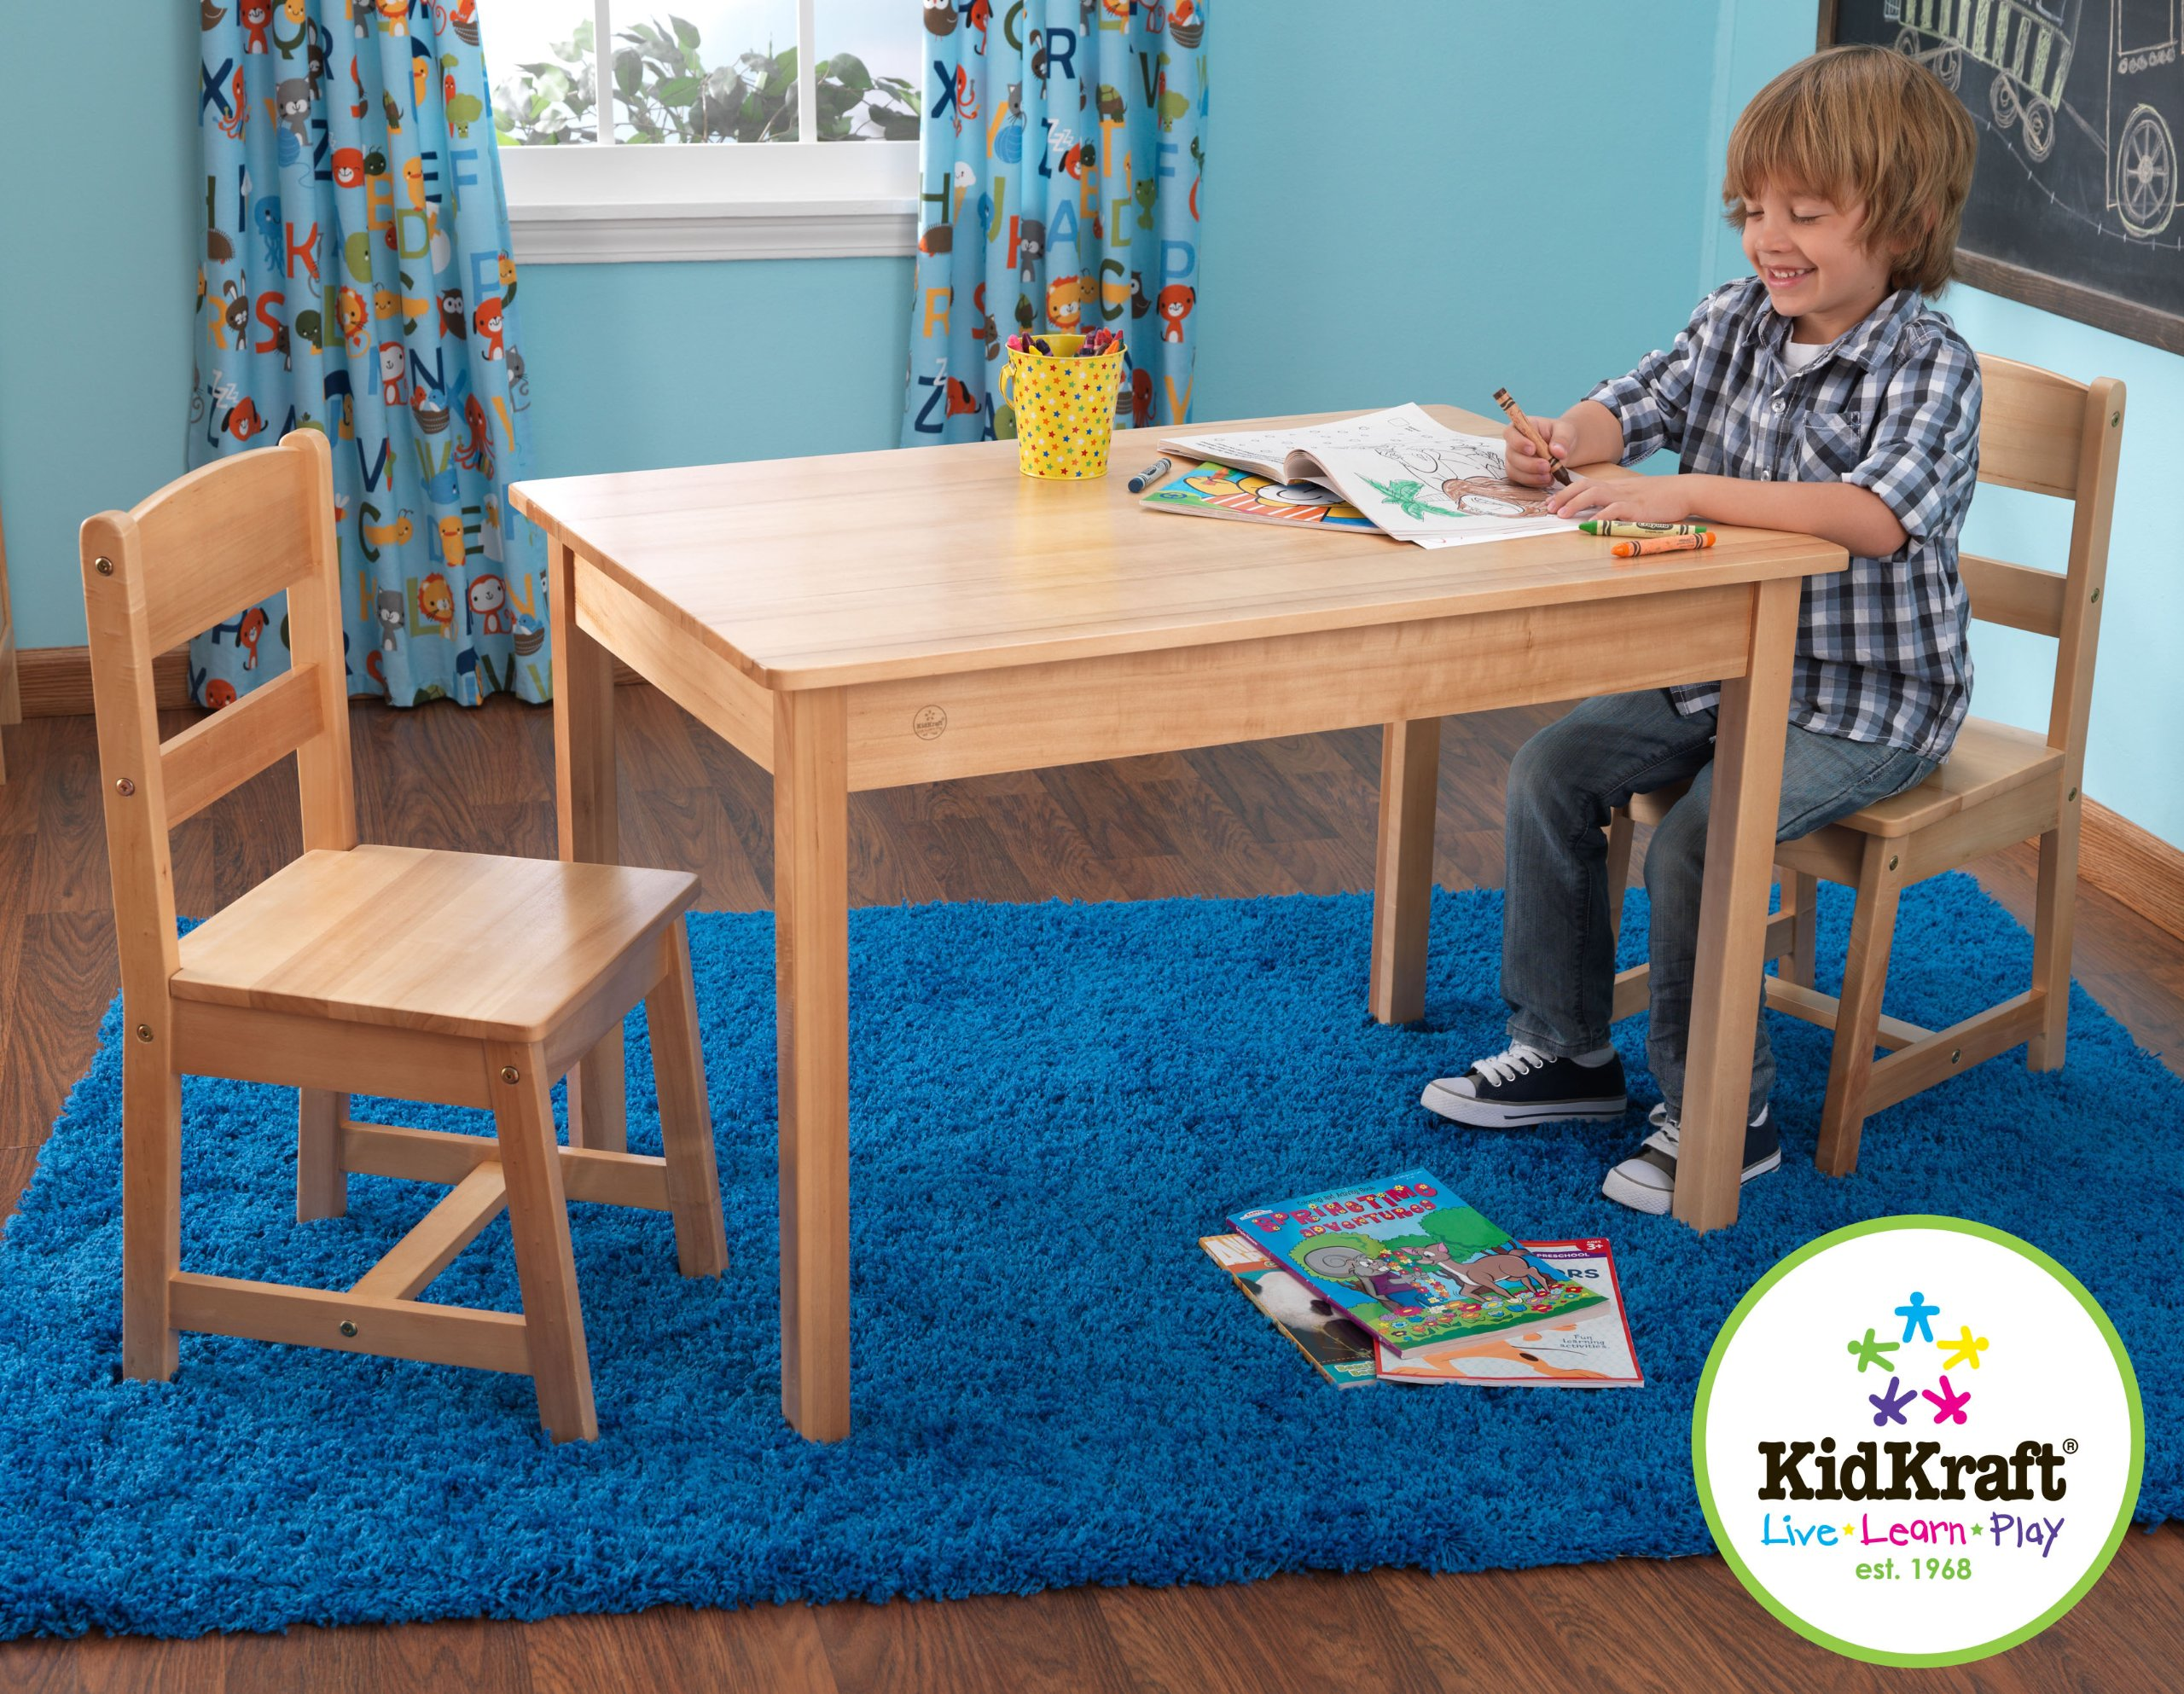 KidKraft Rectangle Table And 2 Chair Set - Natural by KidKraft (Image #1)